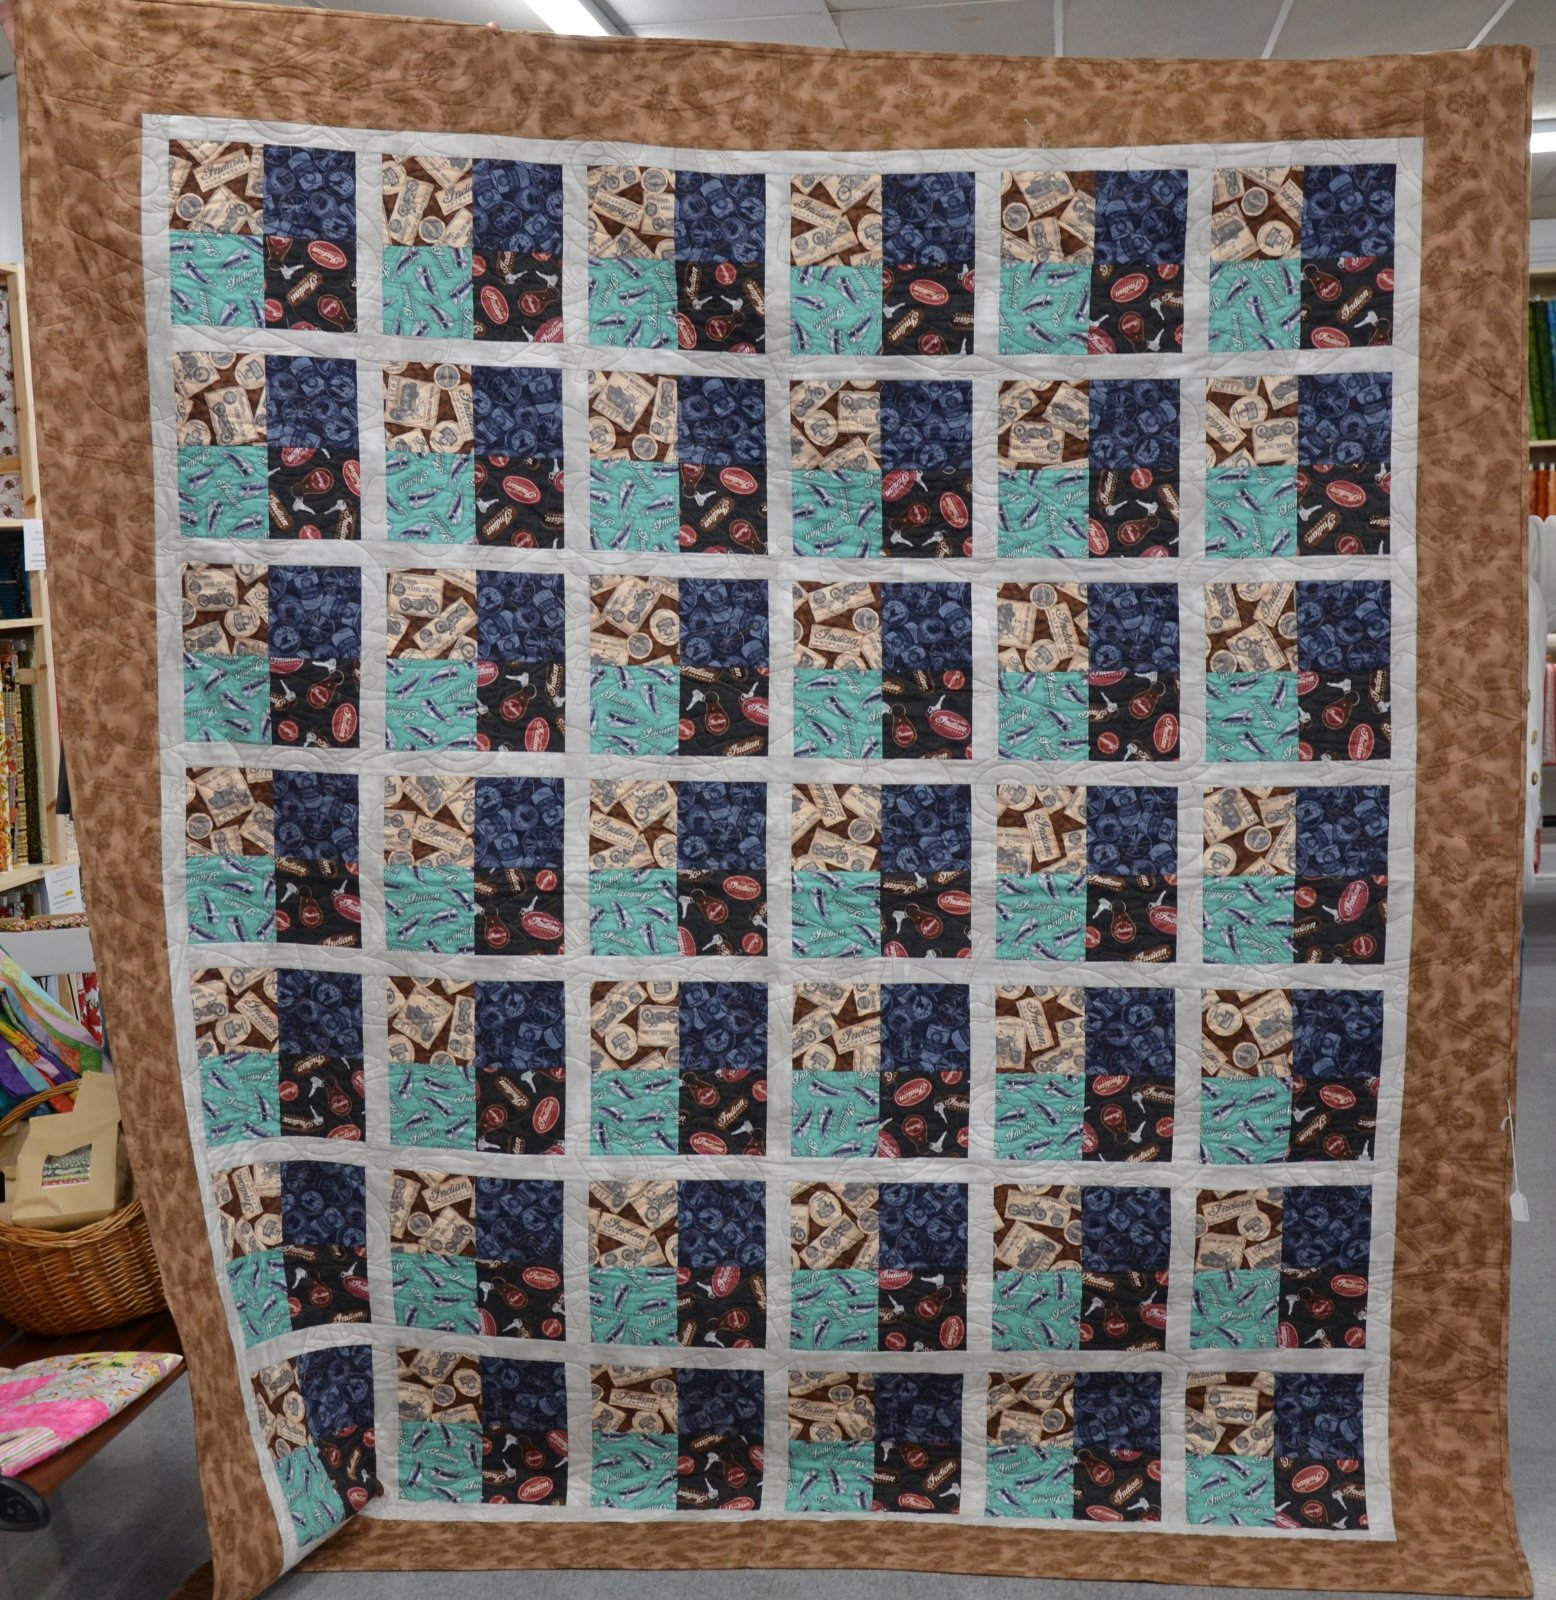 Indian Motorcycle Quilt 85 x 96